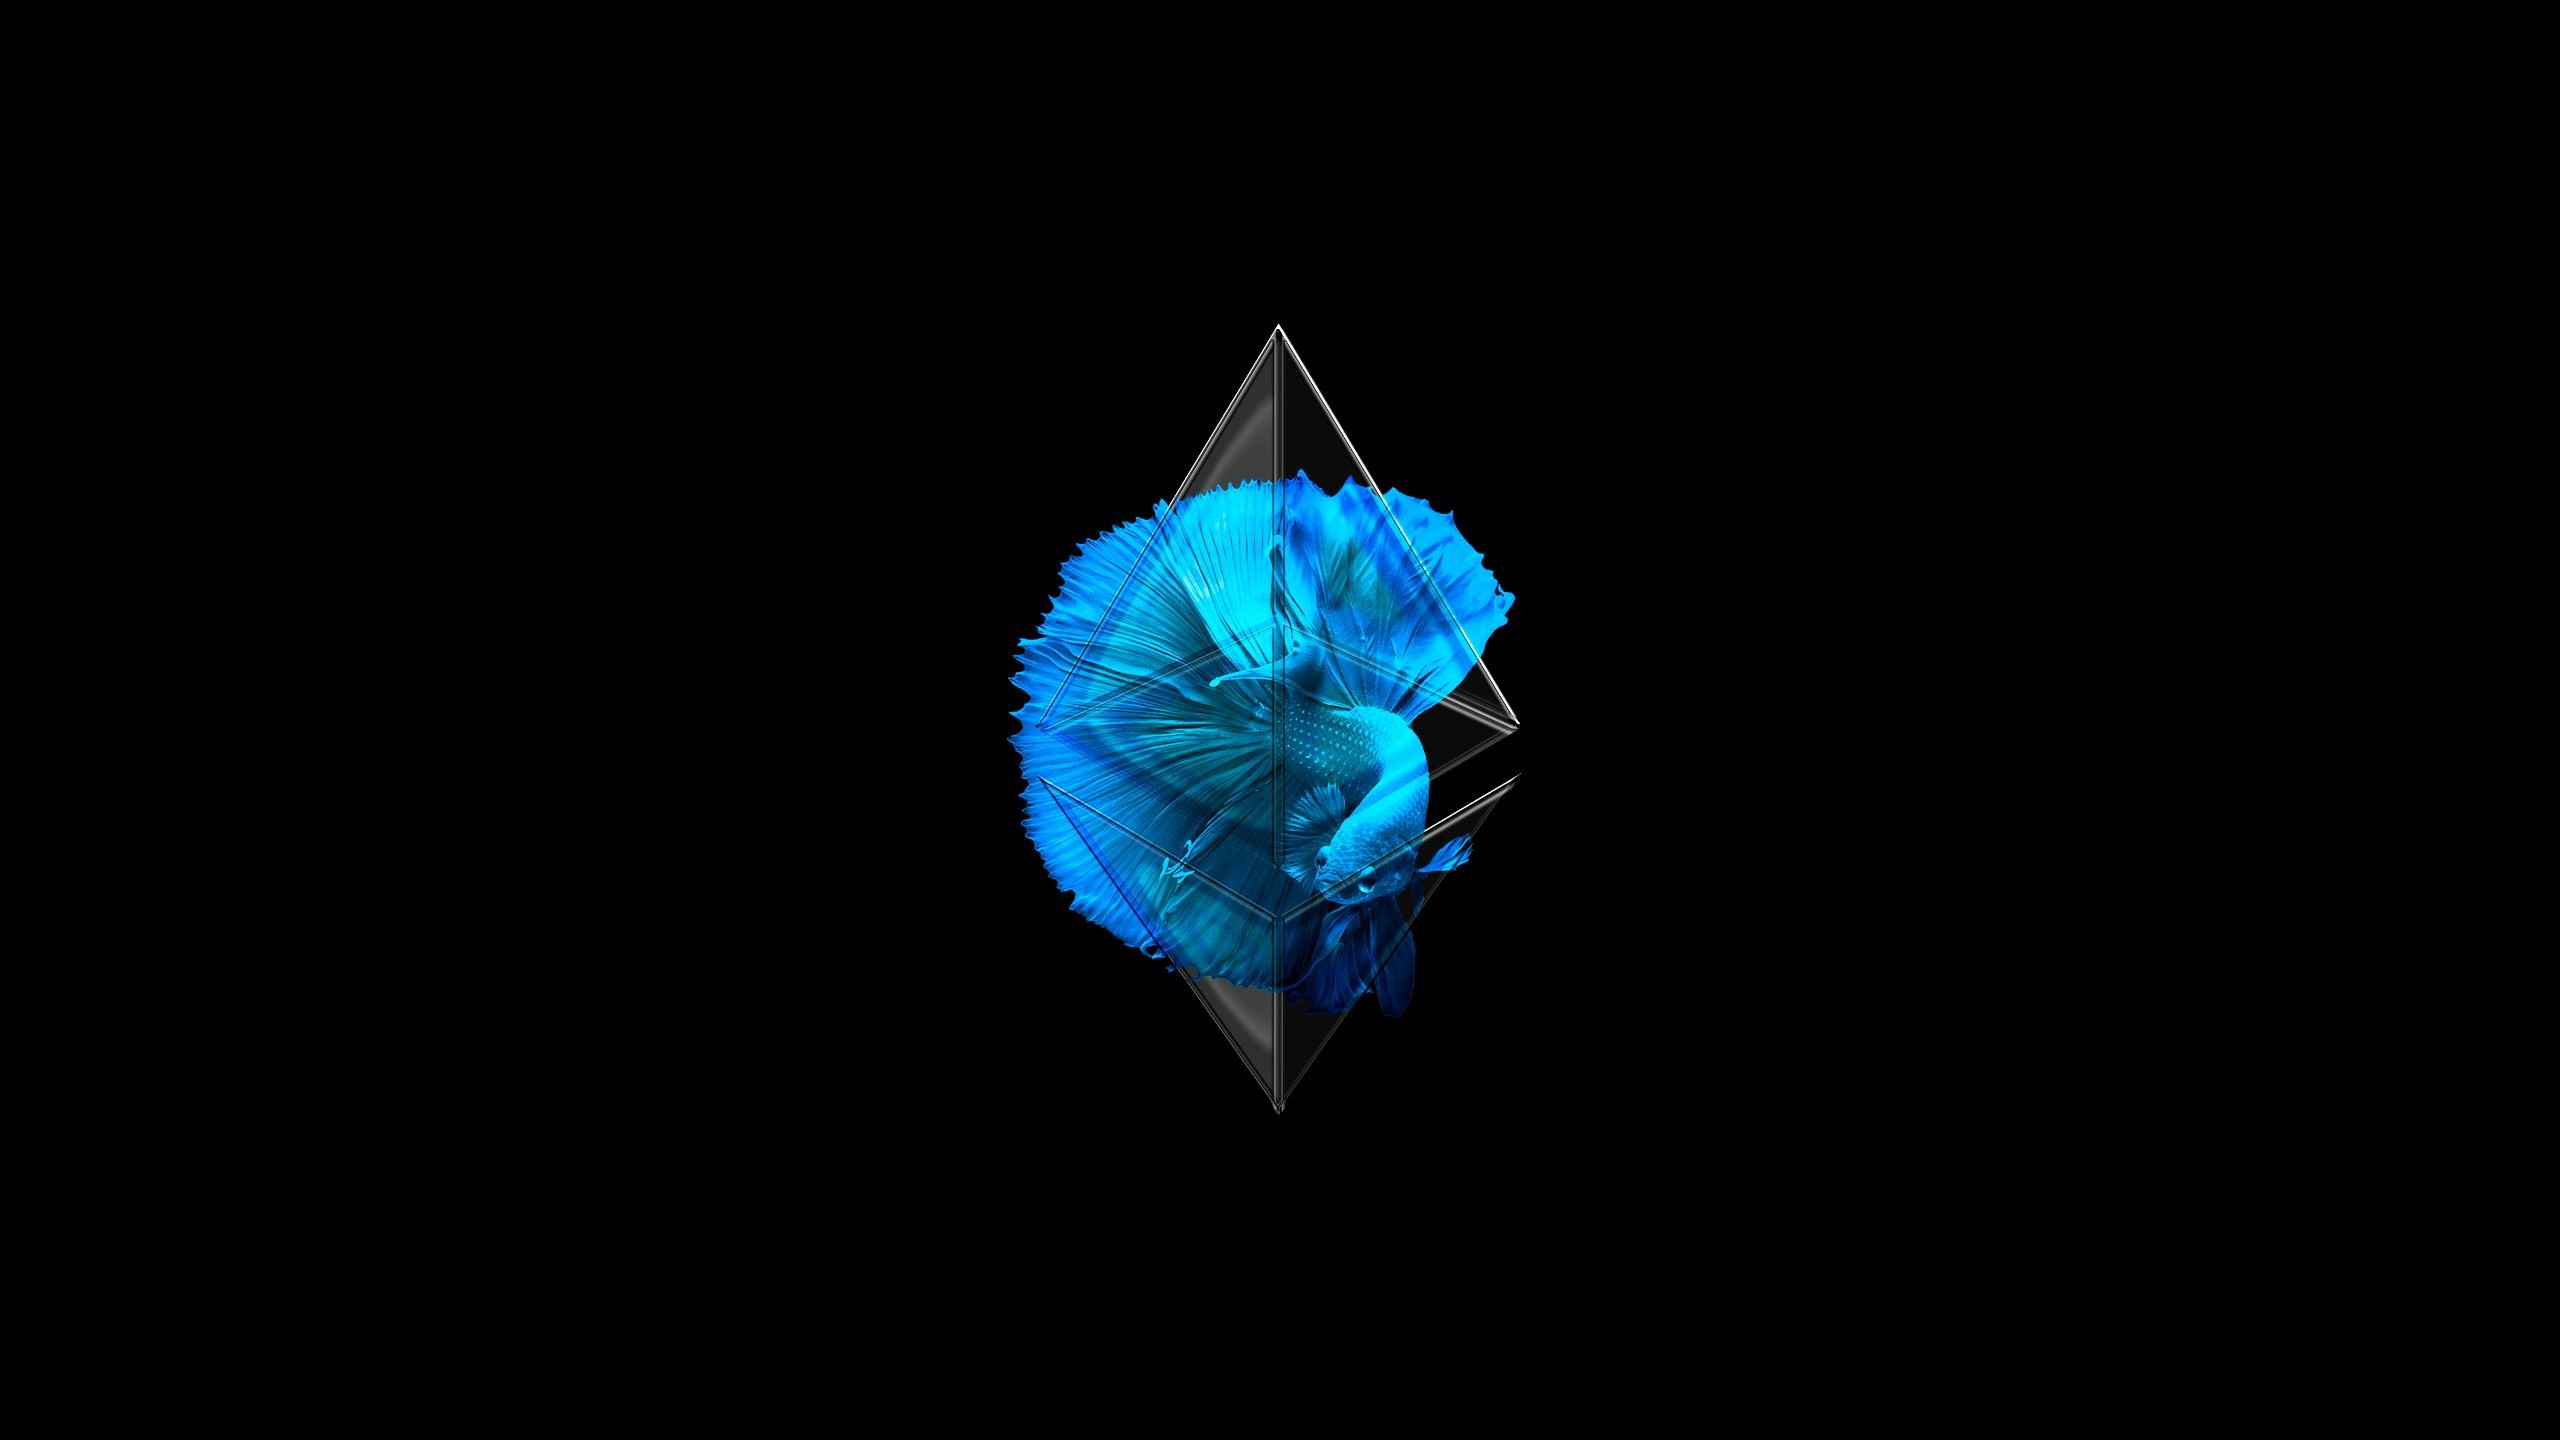 Ethereum Wallpapers 2560x1440